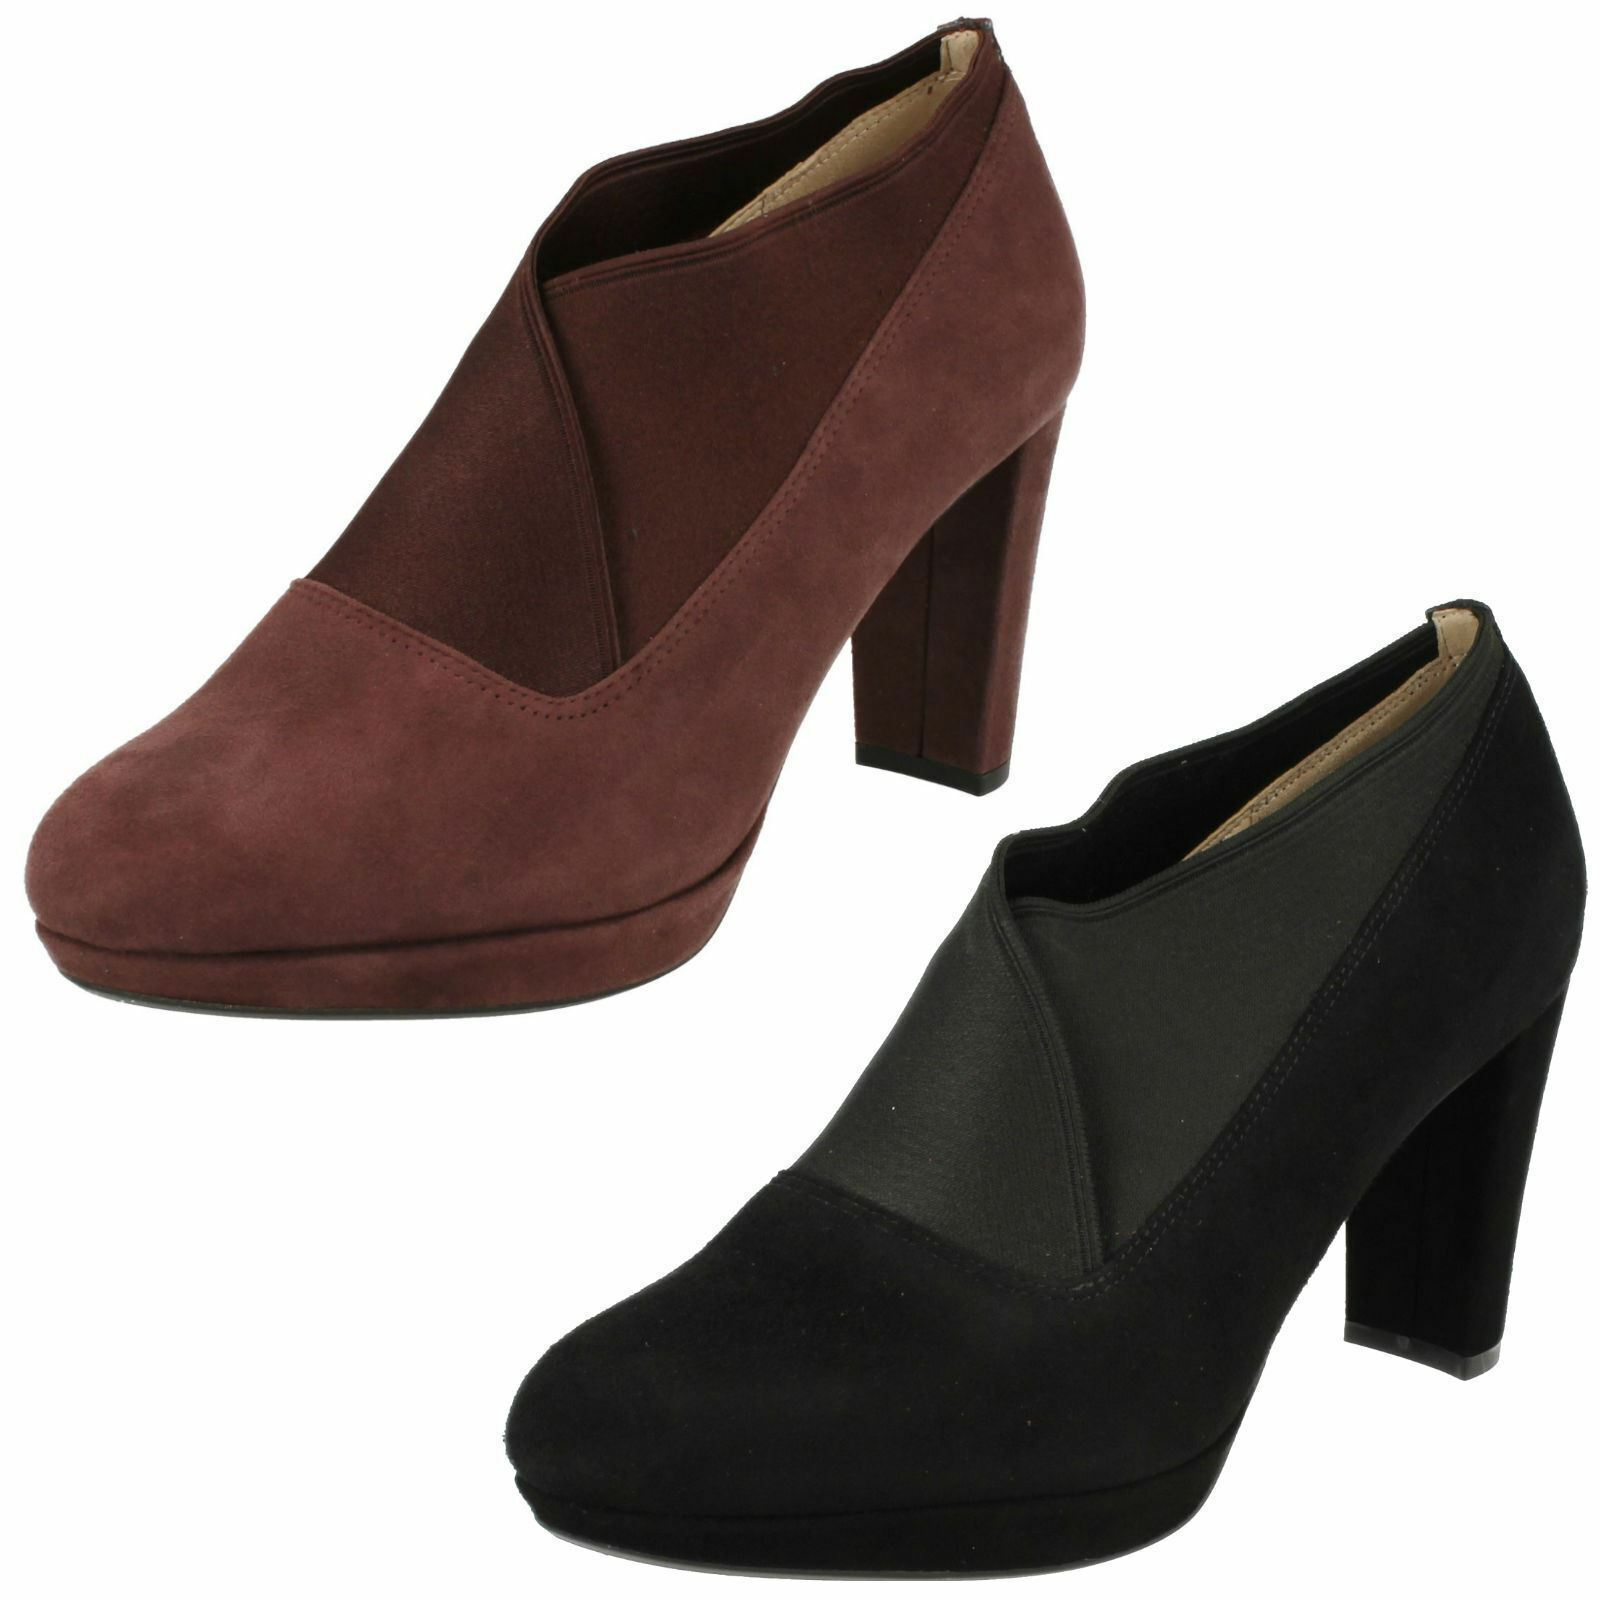 LADIES CLARKS SUEDE SLIP ON Stiefel ELASTICATED FORMAL HEELED Schuhe Stiefel ON KENDRA MIX a61d94